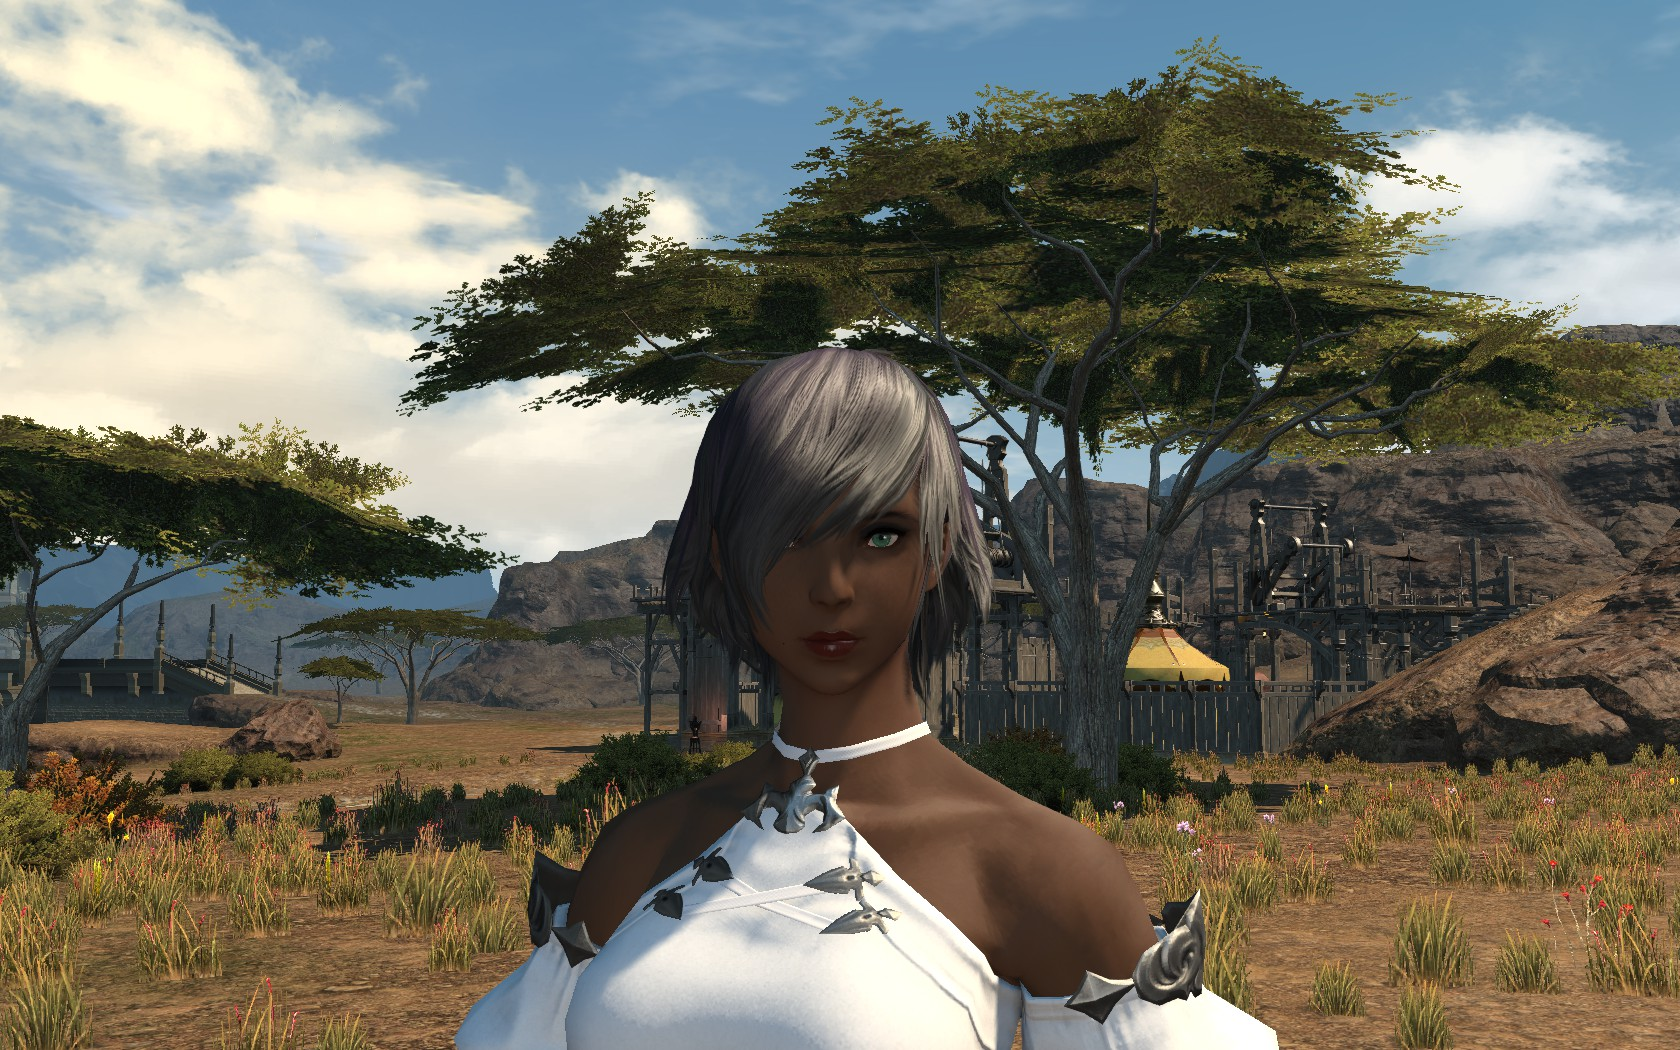 charismatic  white regular-kind luci shes infected youre just interesting thats baaaaaaack what call theyre limsa through tonight well screenshots lifted phase beta